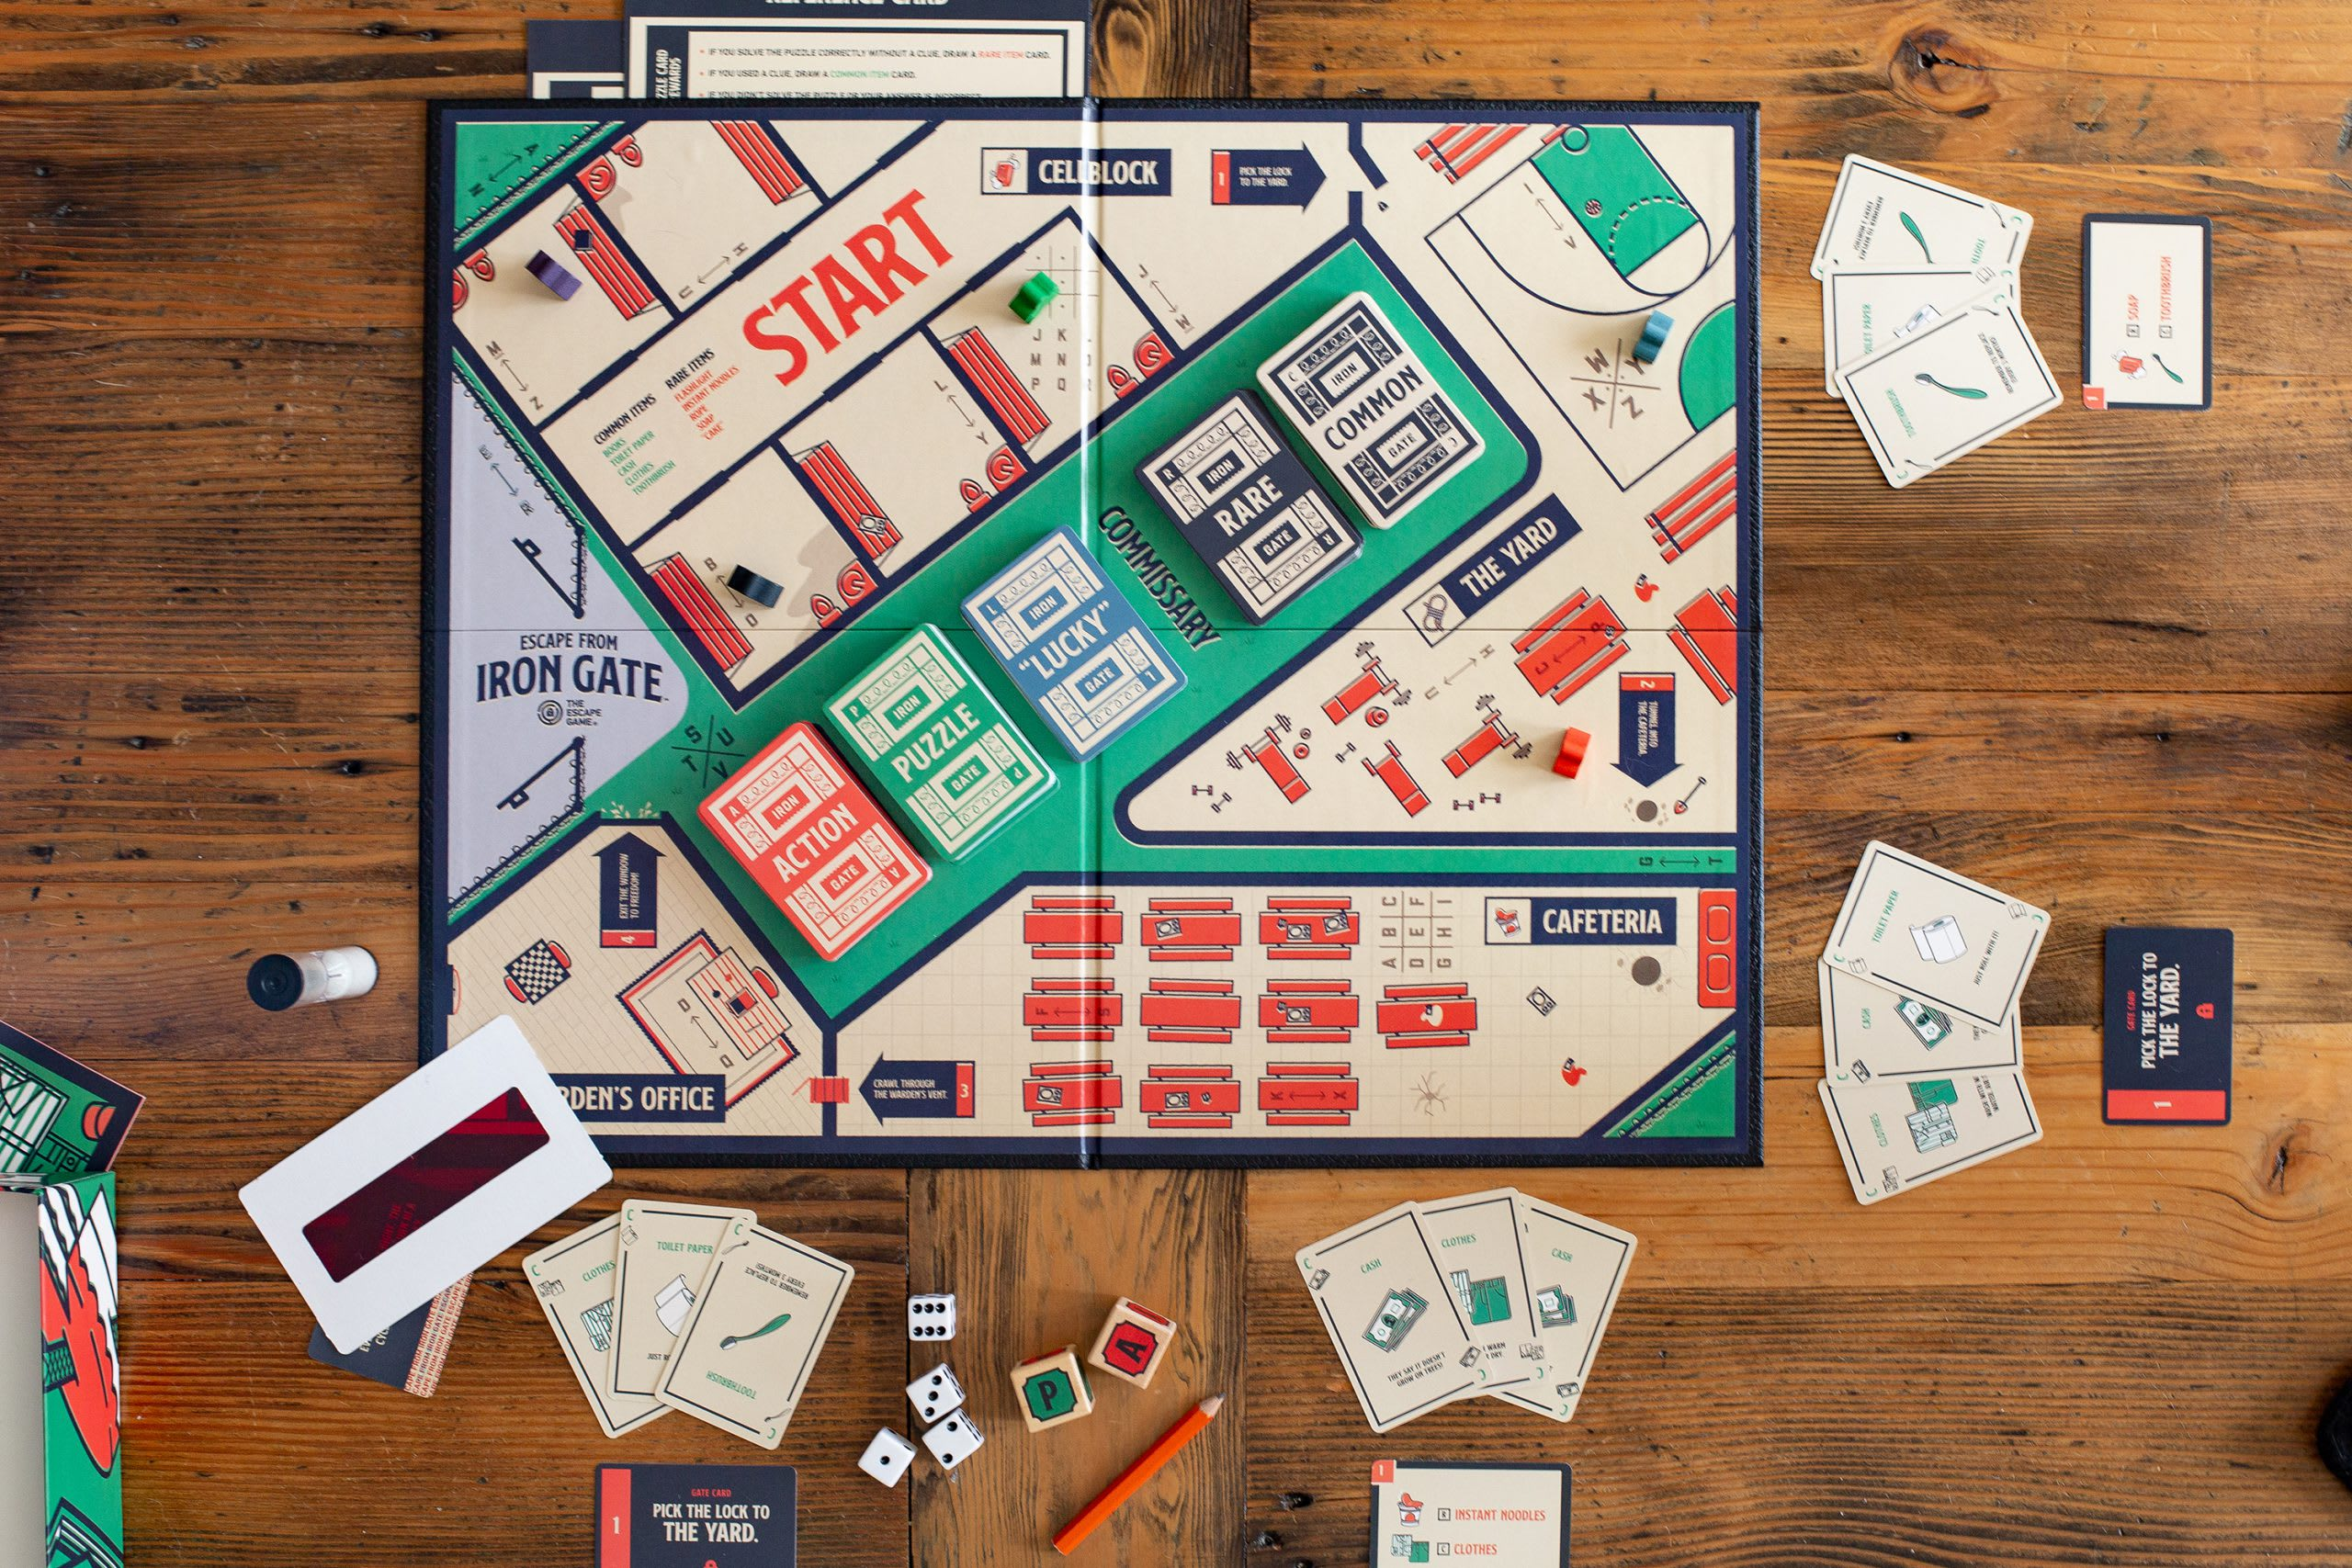 An escape room themed board game sits ready to play on a table. The board is offered online from The Escape Game Atlanta.